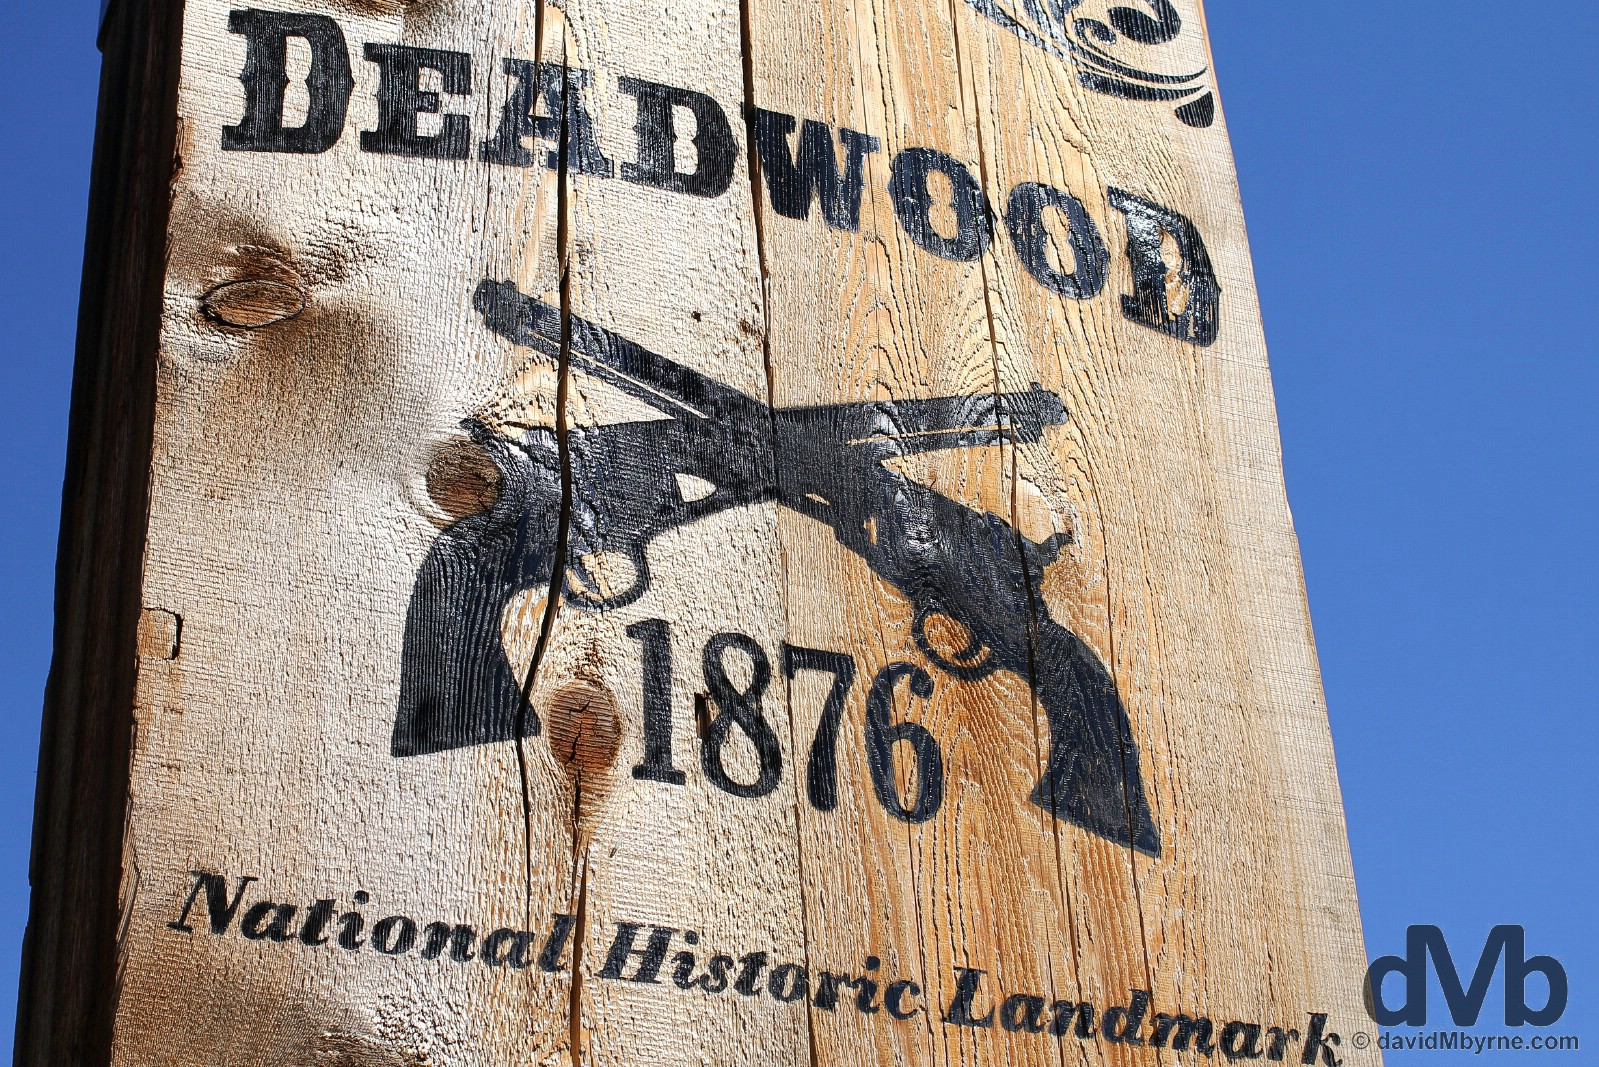 Deadwood, The Black Hills, South Dakota, USA. September 3, 2016.